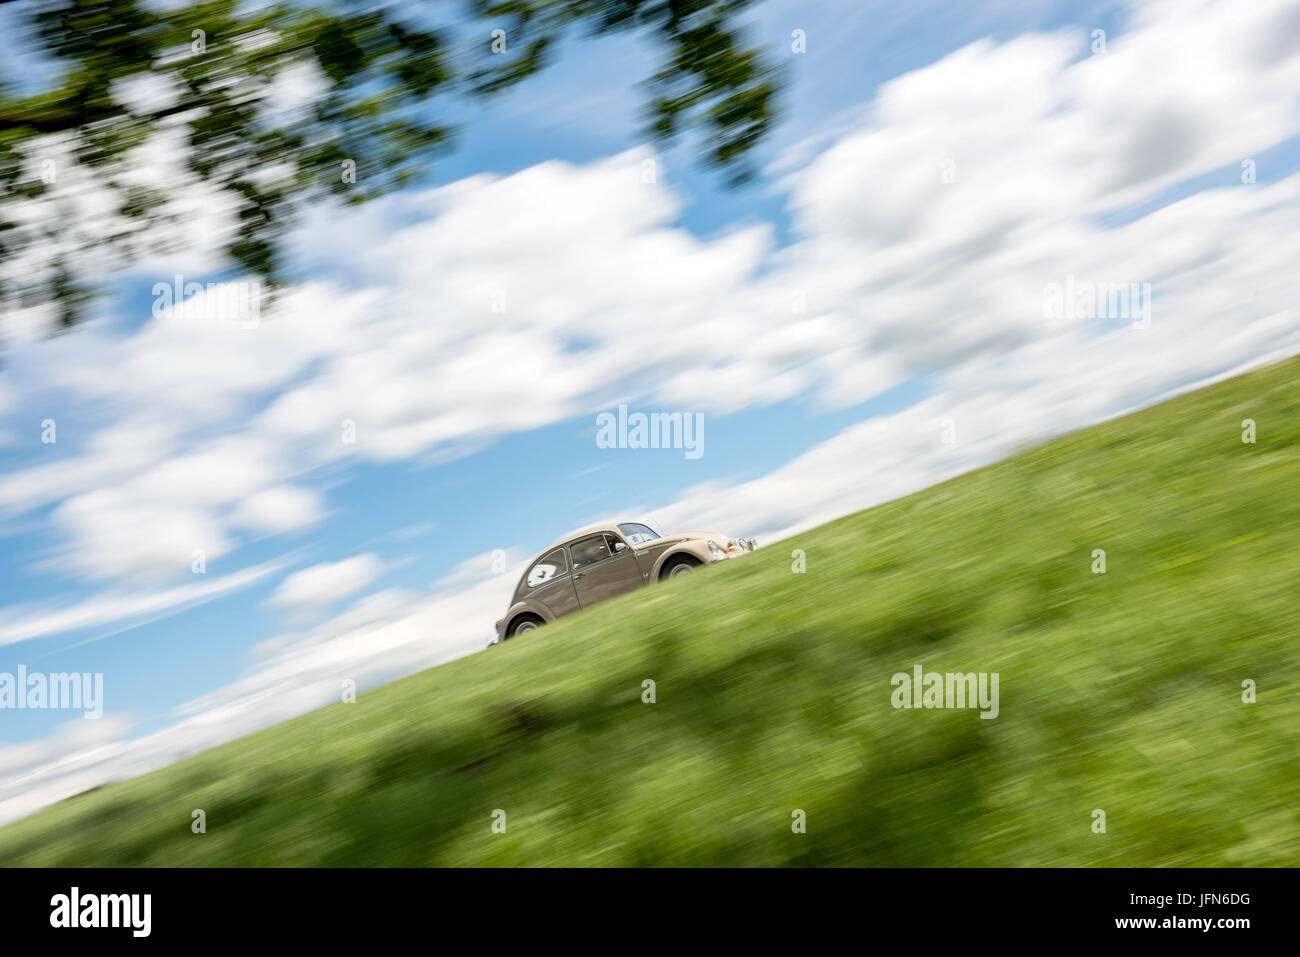 VW Beetle - Classic Car on the Road - Stock Image